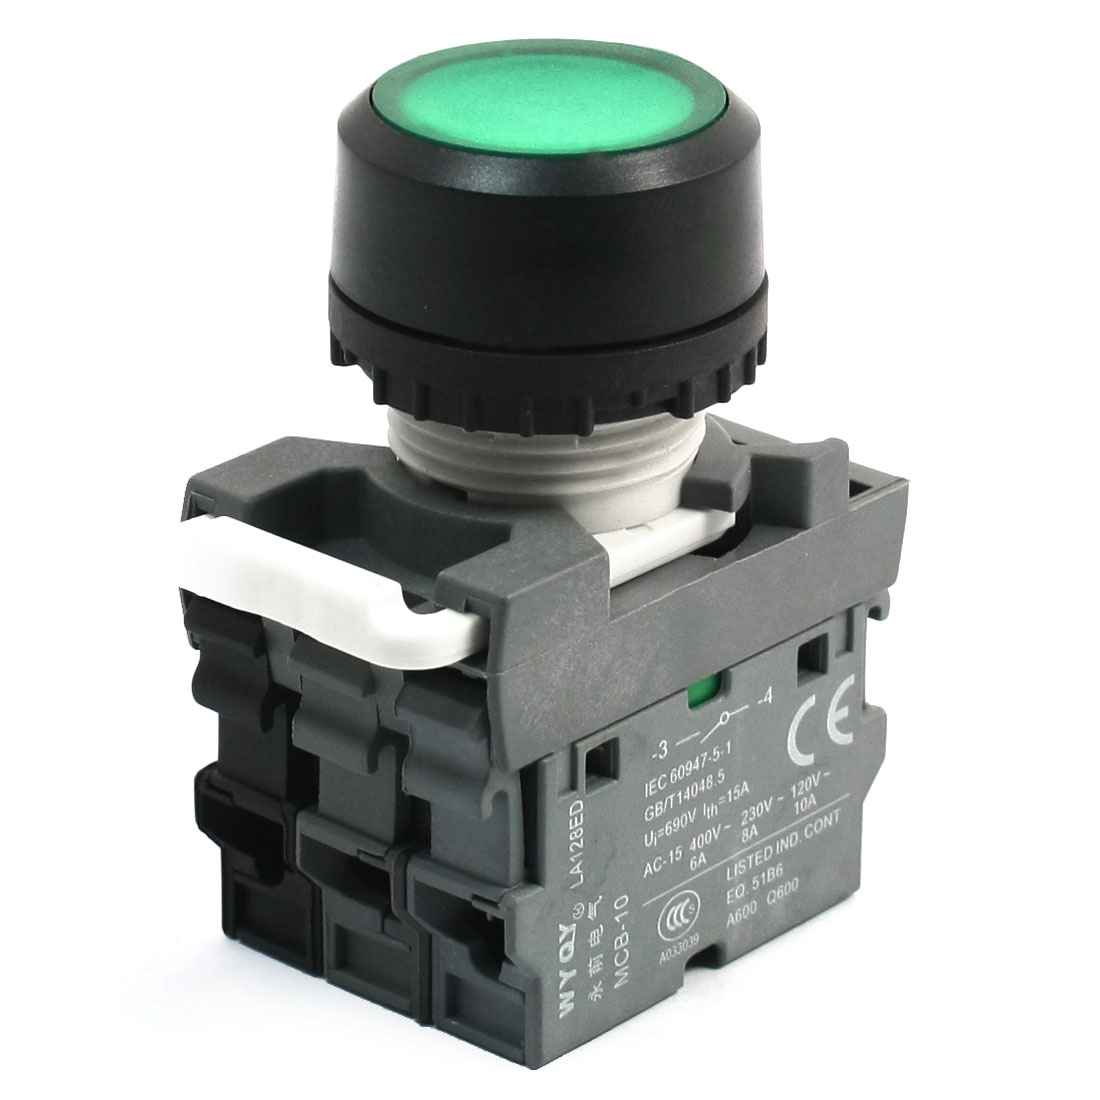 DPST Momentary Action Type Green Indicator Lamp Push Button Switch 690V 10A